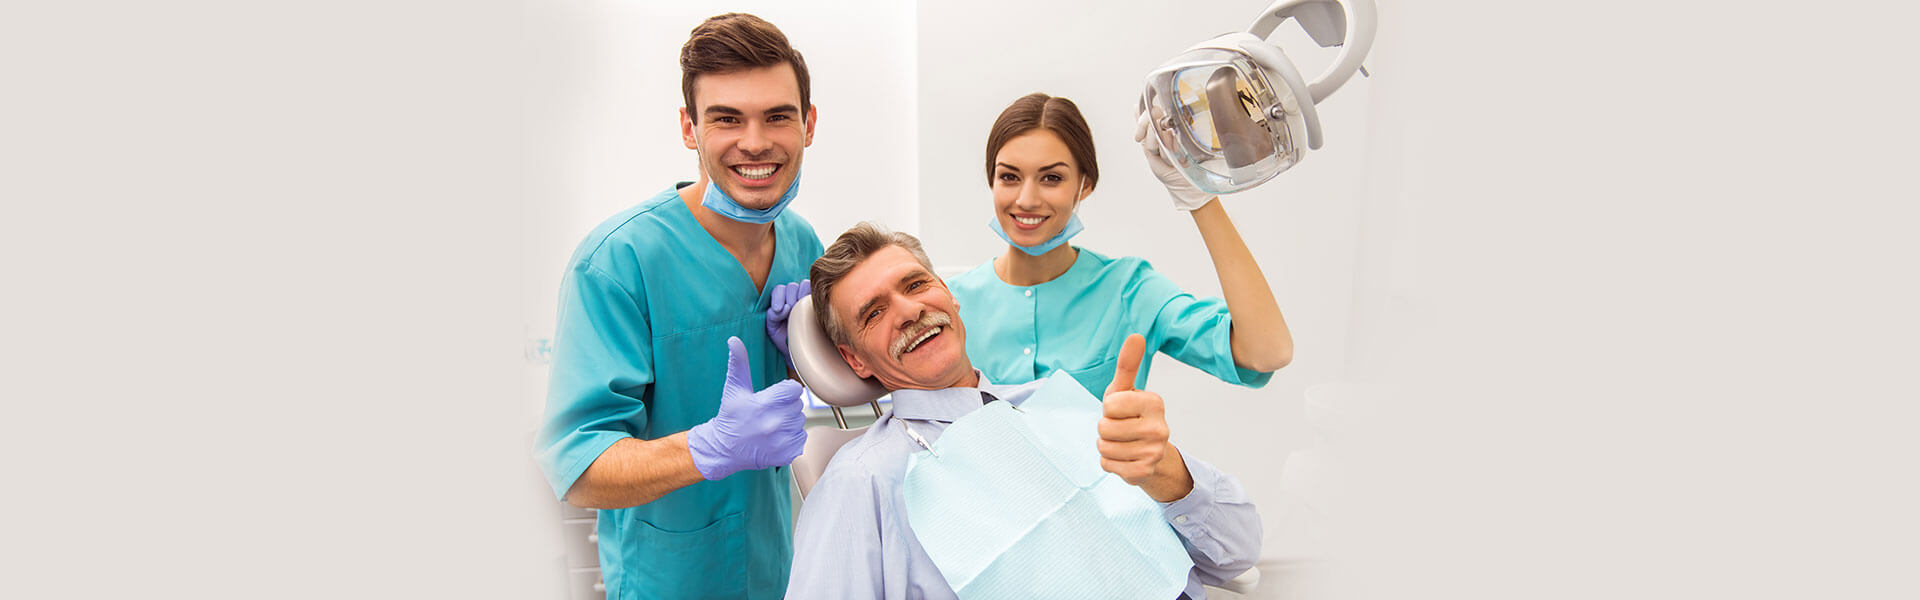 The Best Way to Sell a Dental Practice